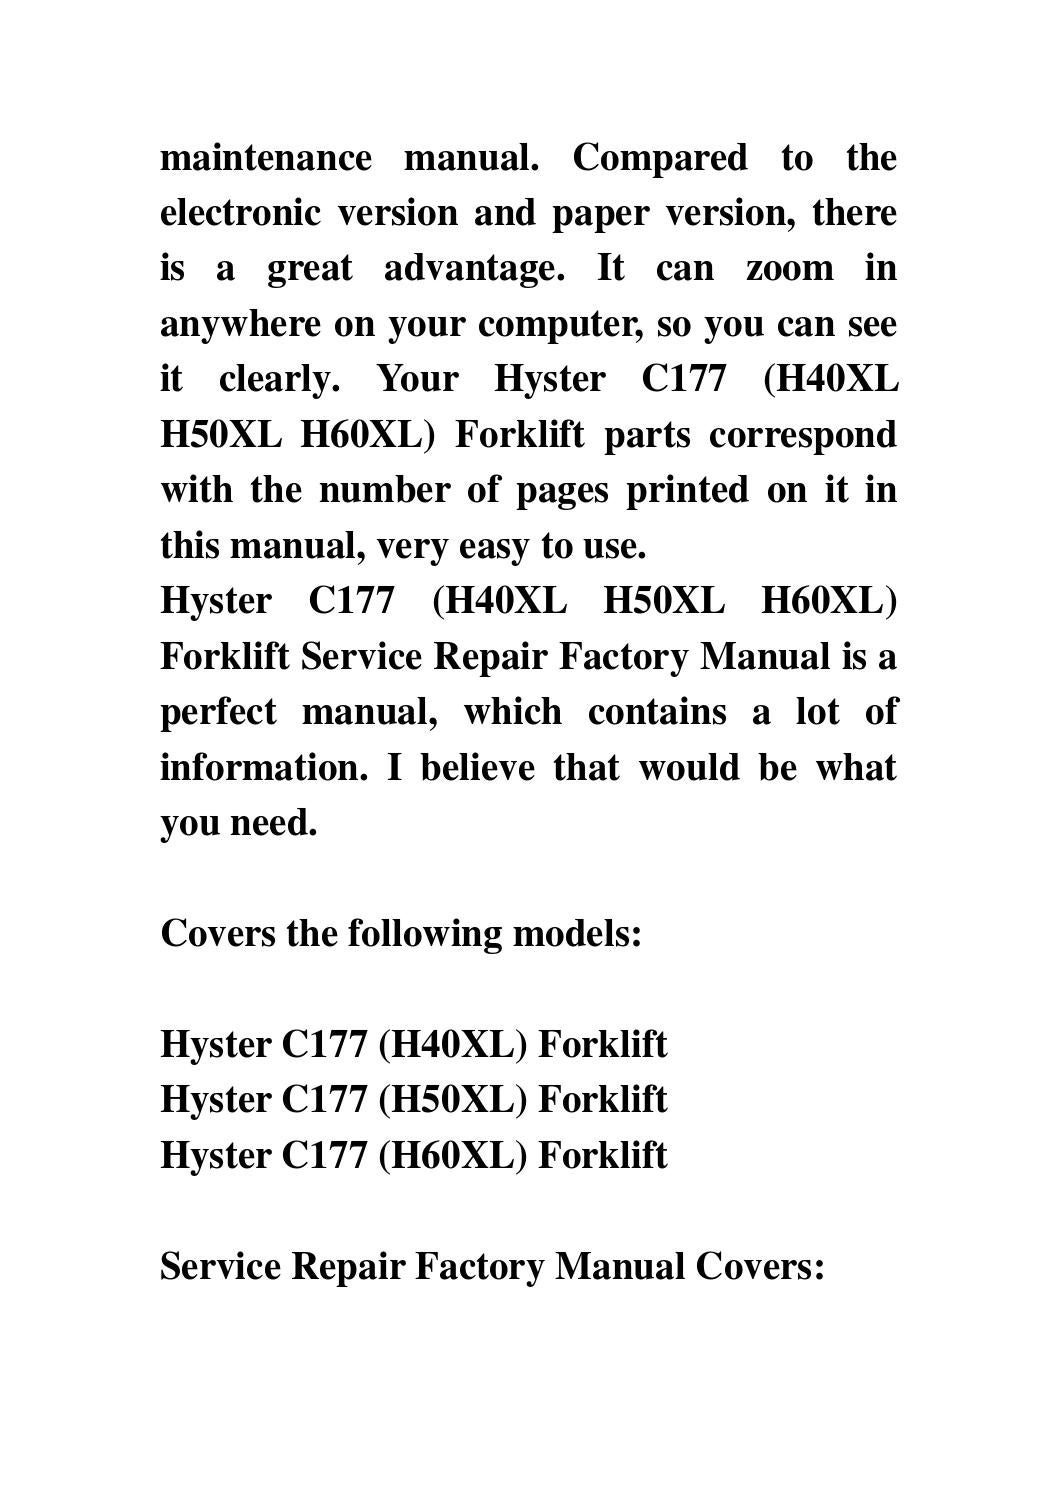 Hyster h50xl forklift service manual doc msword document download very narrow aisle v30xmu hst03 instant offer entitled factory models covers a177 h40xl forklift h50xl h60xl workshop manual capacities and spec fandeluxe Image collections